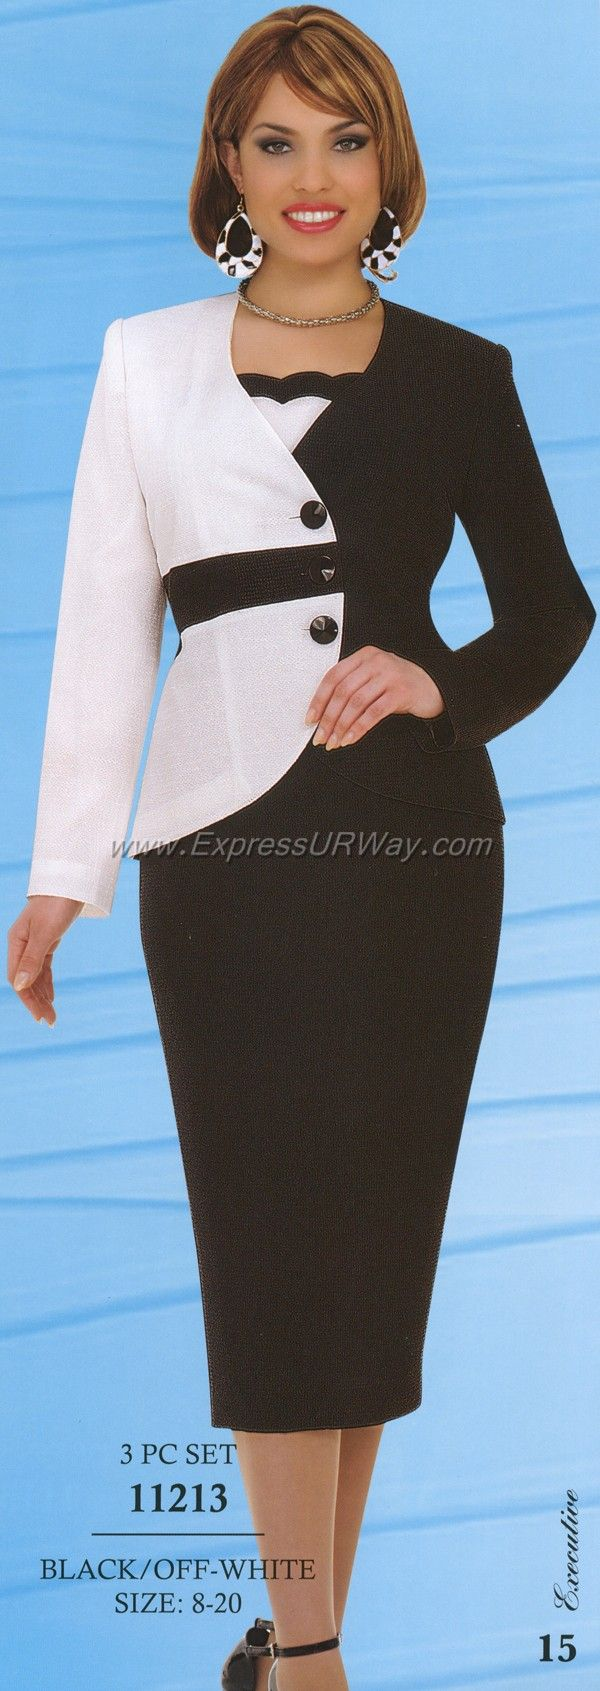 17 best ideas about business suit women women s ben marc executive spring 2014 expressurway com womens career suits